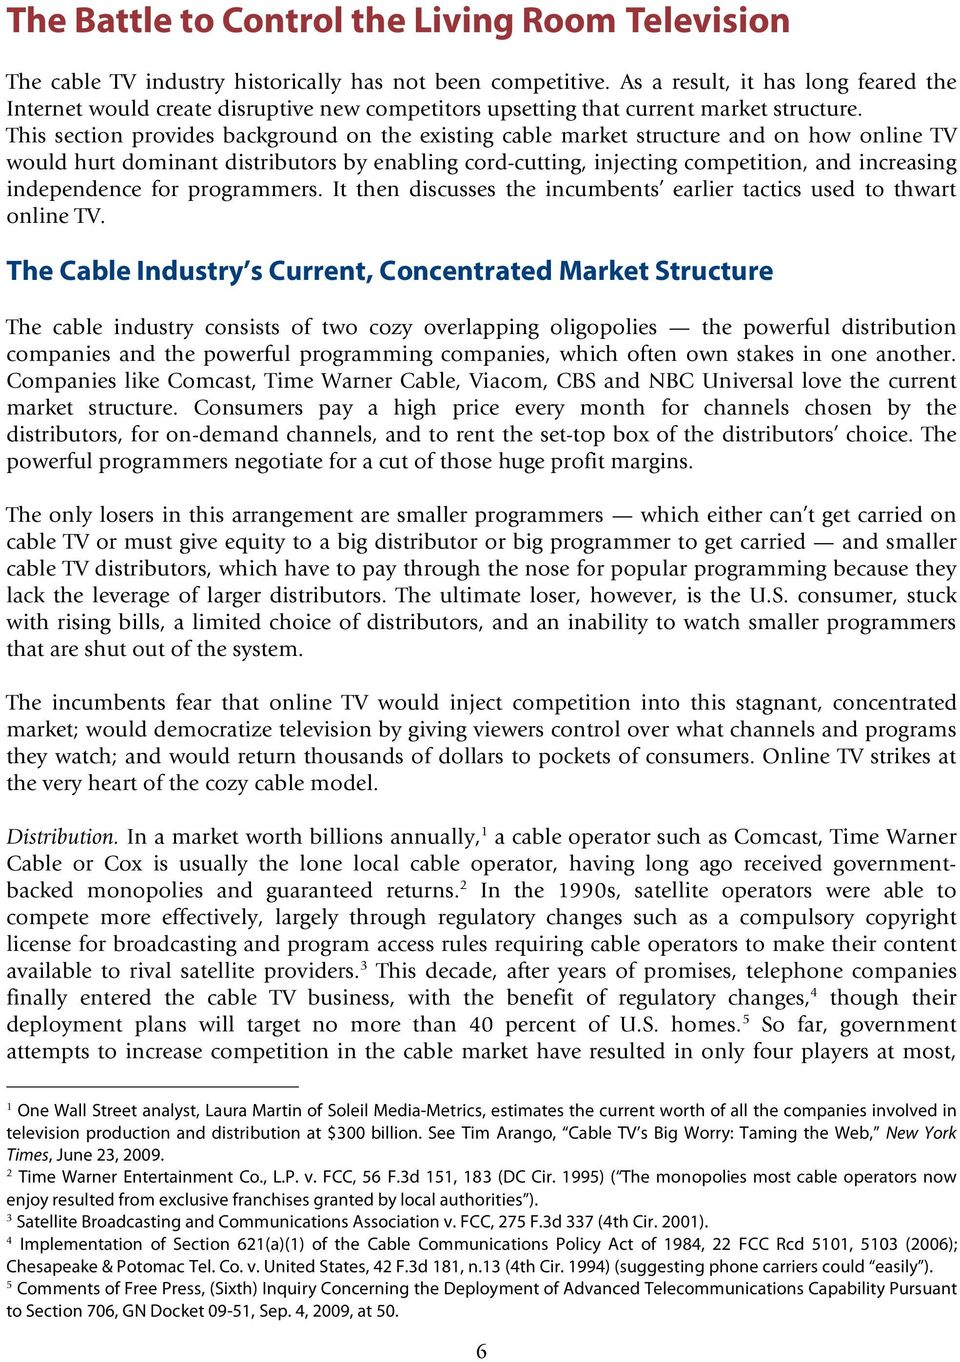 This section provides background on the existing cable market structure and on how online TV would hurt dominant distributors by enabling cord-cutting, injecting competition, and increasing